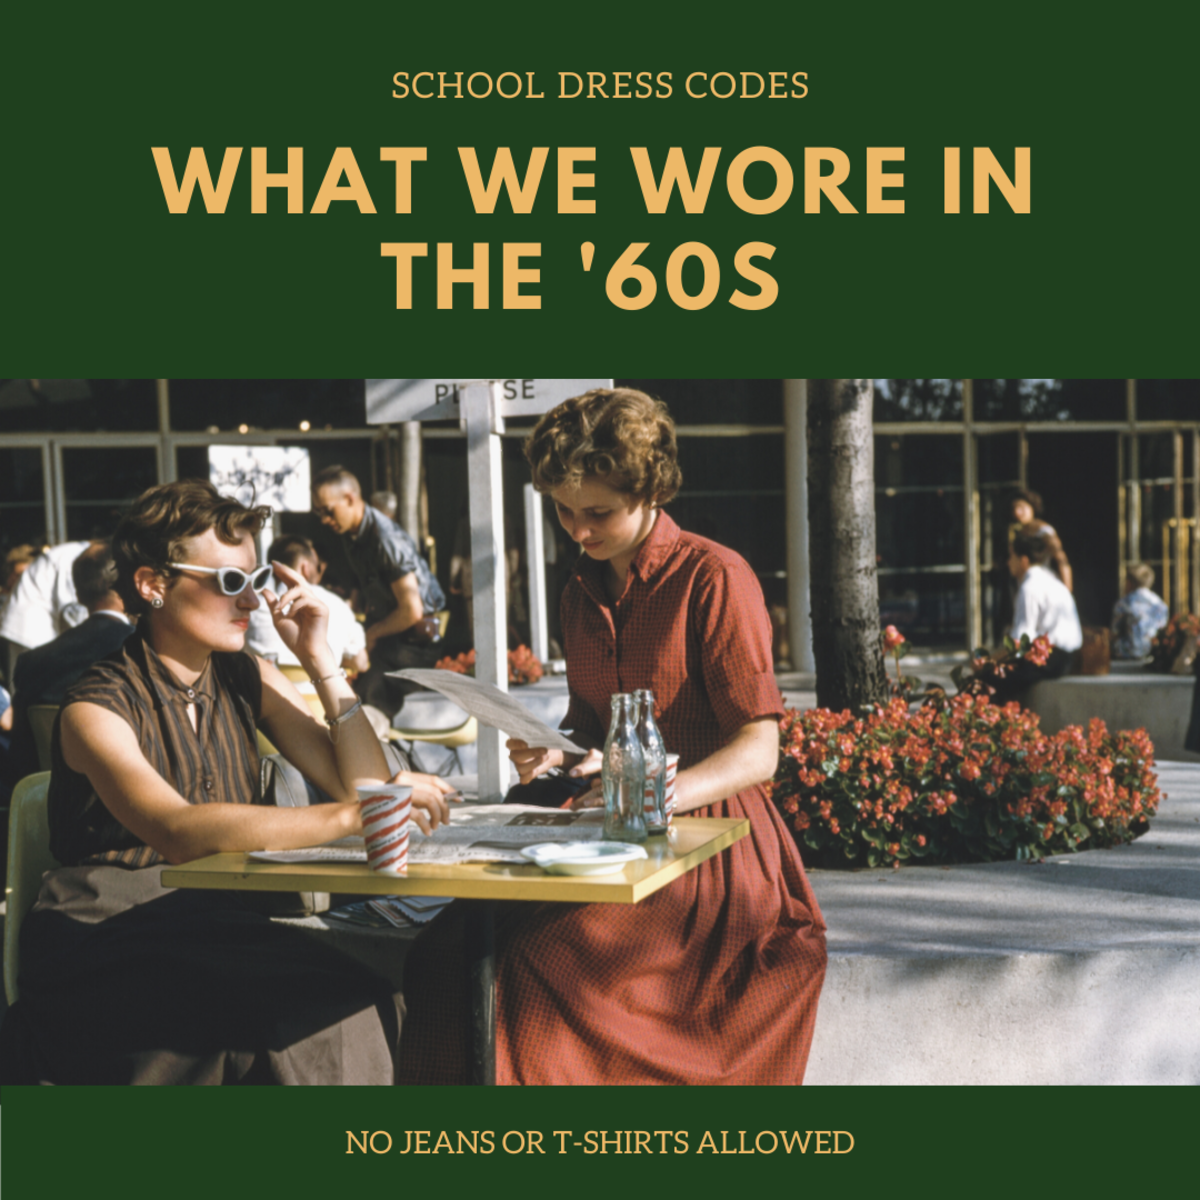 Learn how fashion and school dress codes  in the 1960s and 1970s differ from today.